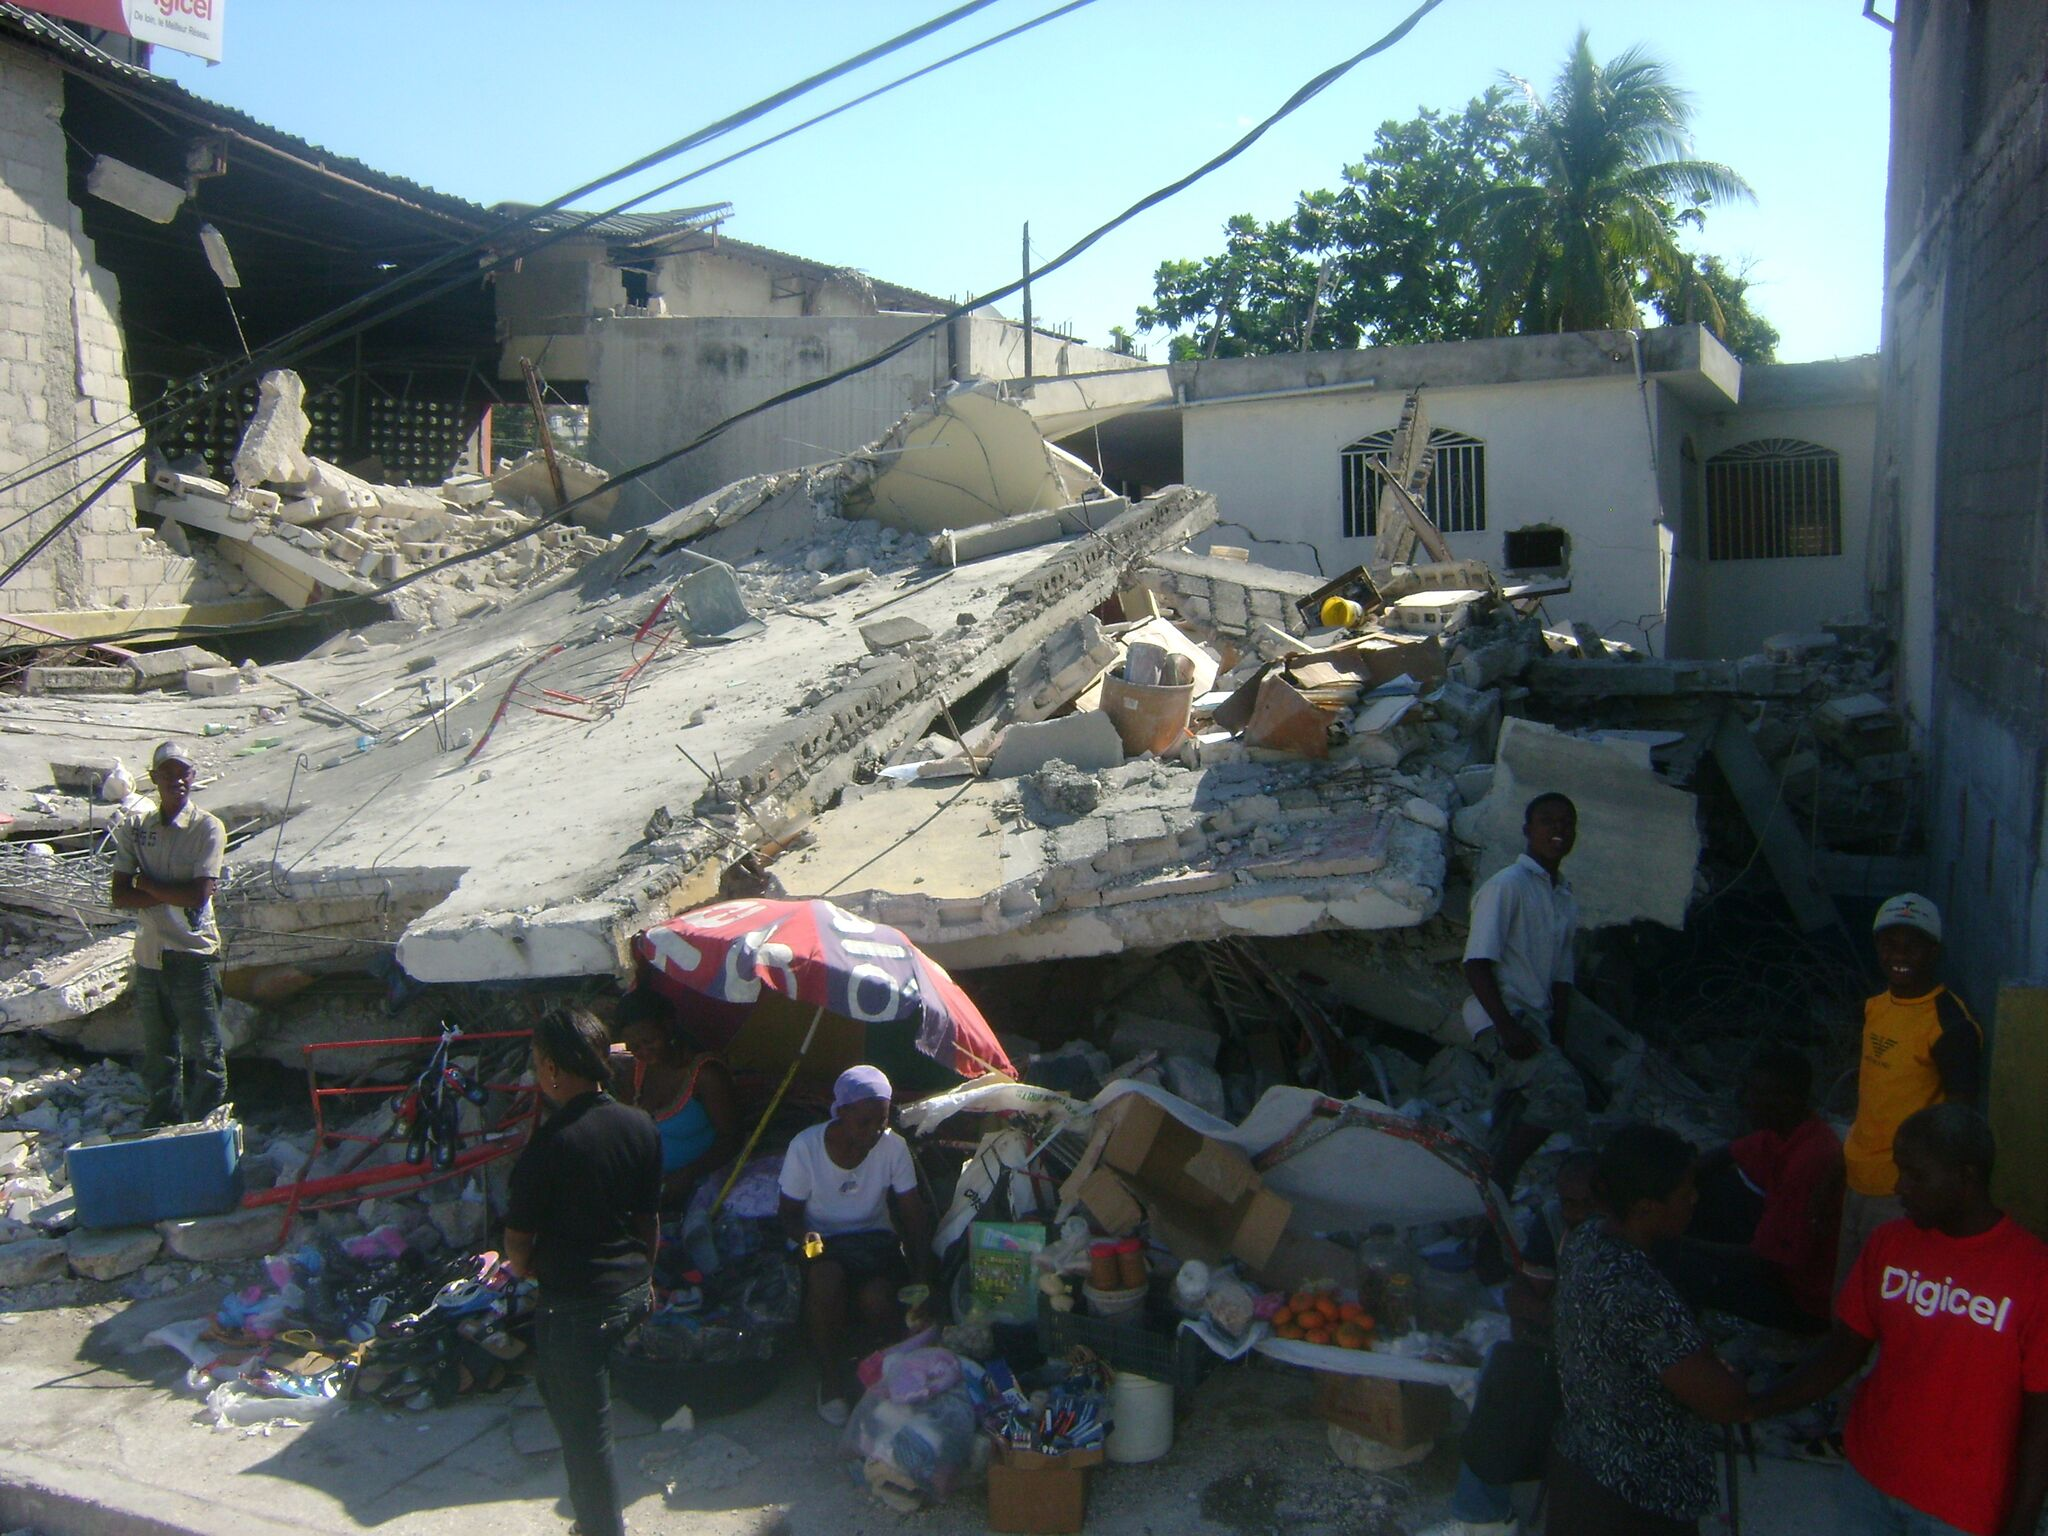 A roadside stand pops up again within days of the earthquake amid the destruction in Port au Prince.